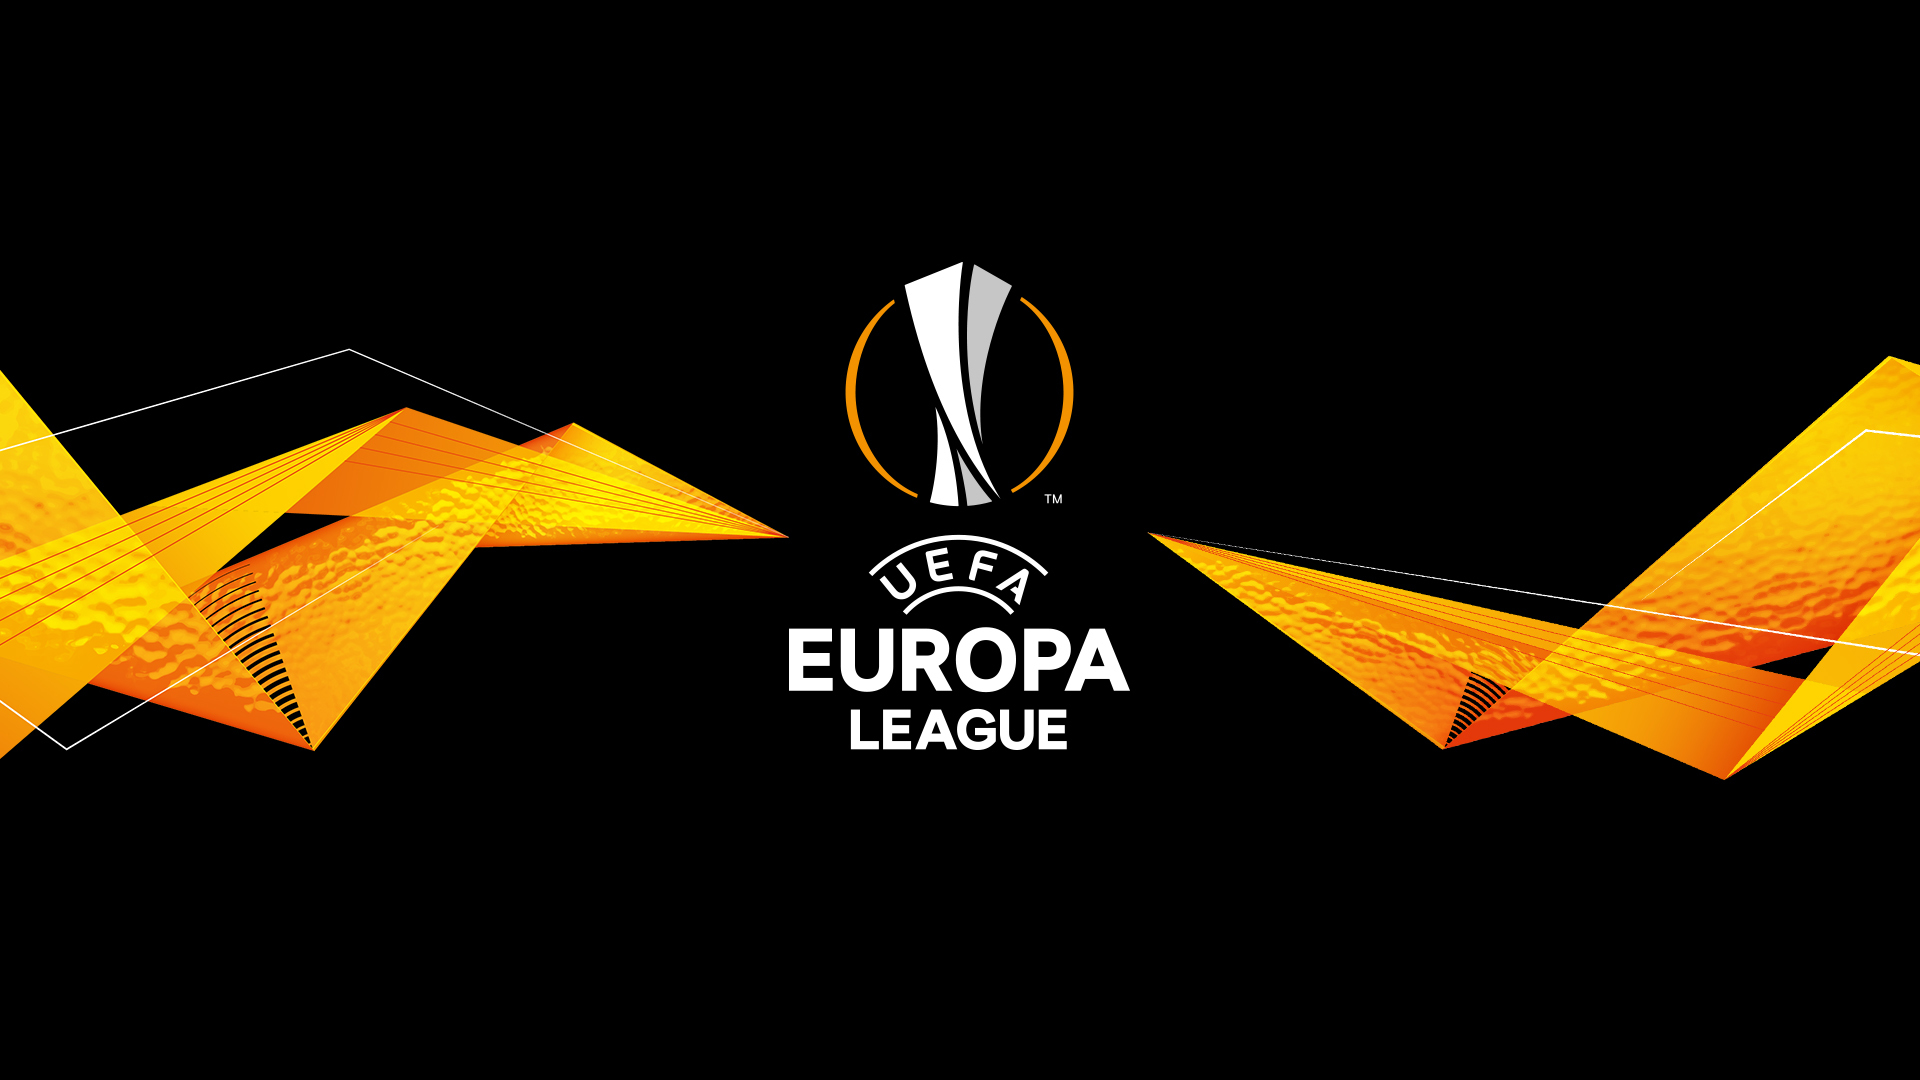 Calendario Europa League Ottavi.Europa League Ottavi Di Finale Calendario Date E Orari